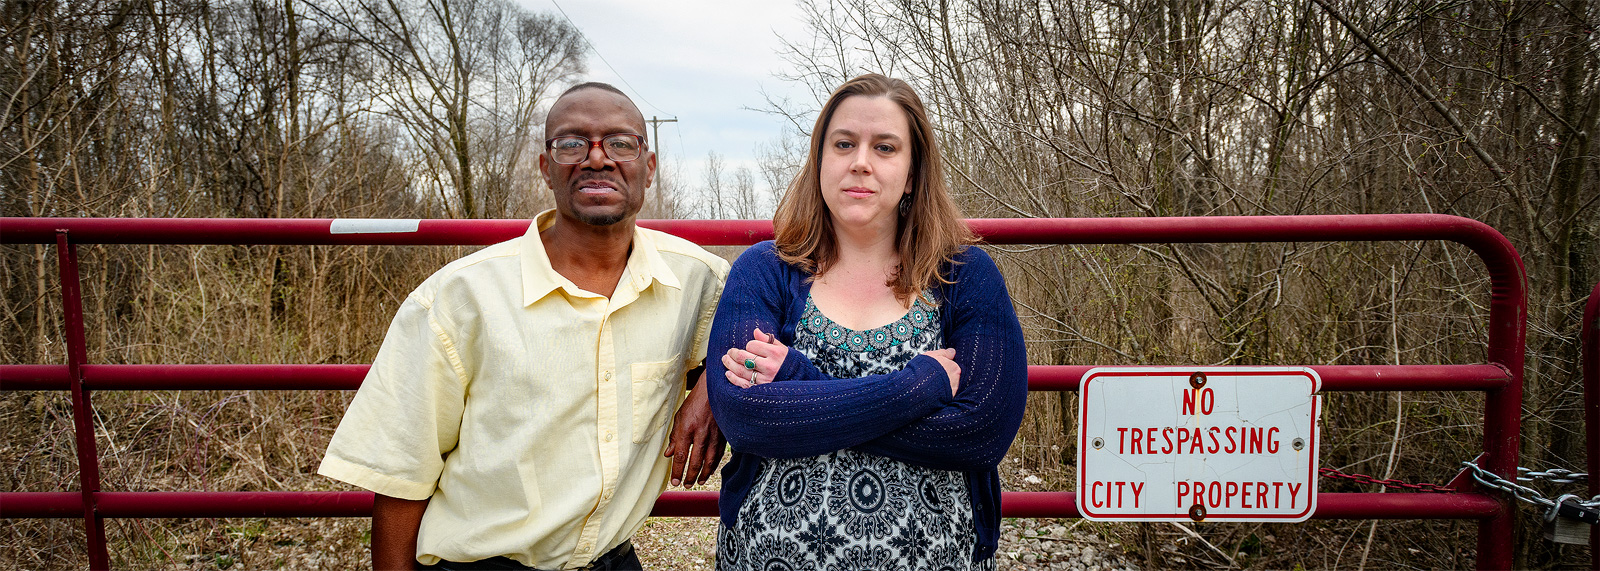 Michael Simmons and Erin Snyder outside the former landfill adjoining the Bell Kramer neighborhood <span class='image-credits'>Doug Coombe</span>